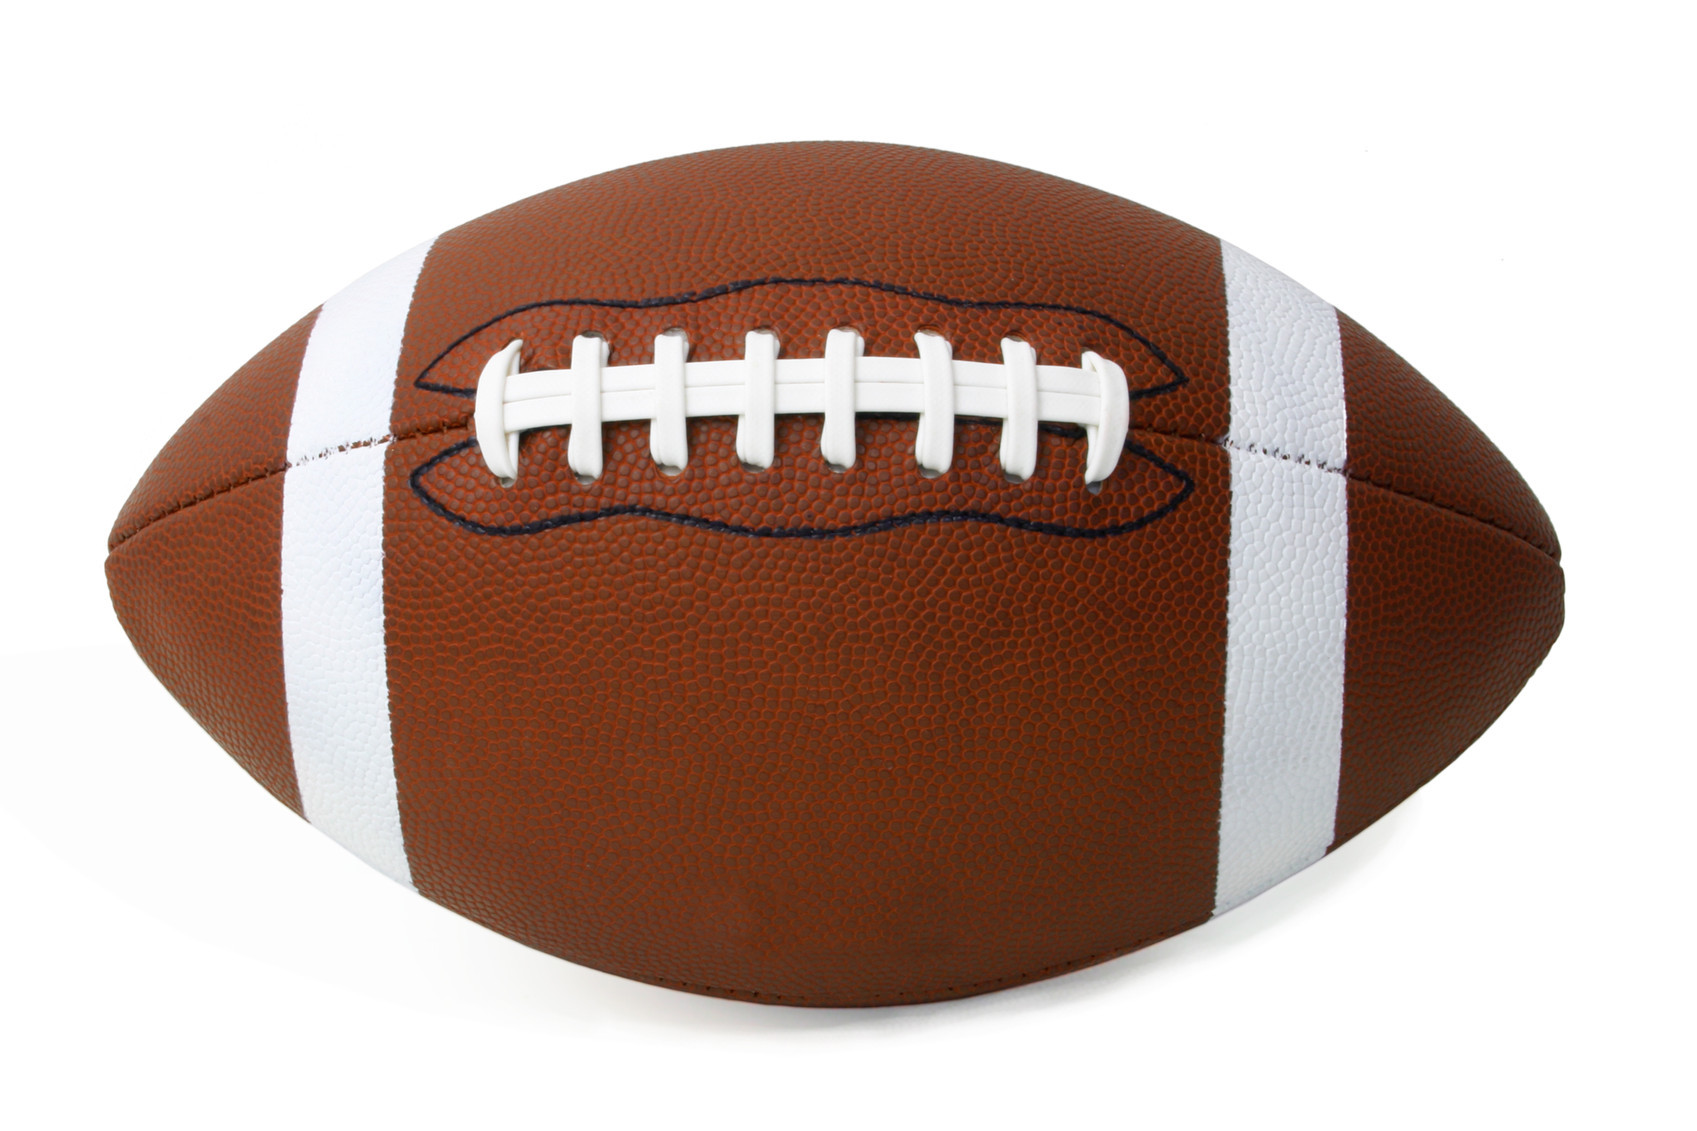 A brown and white football is against a white background.